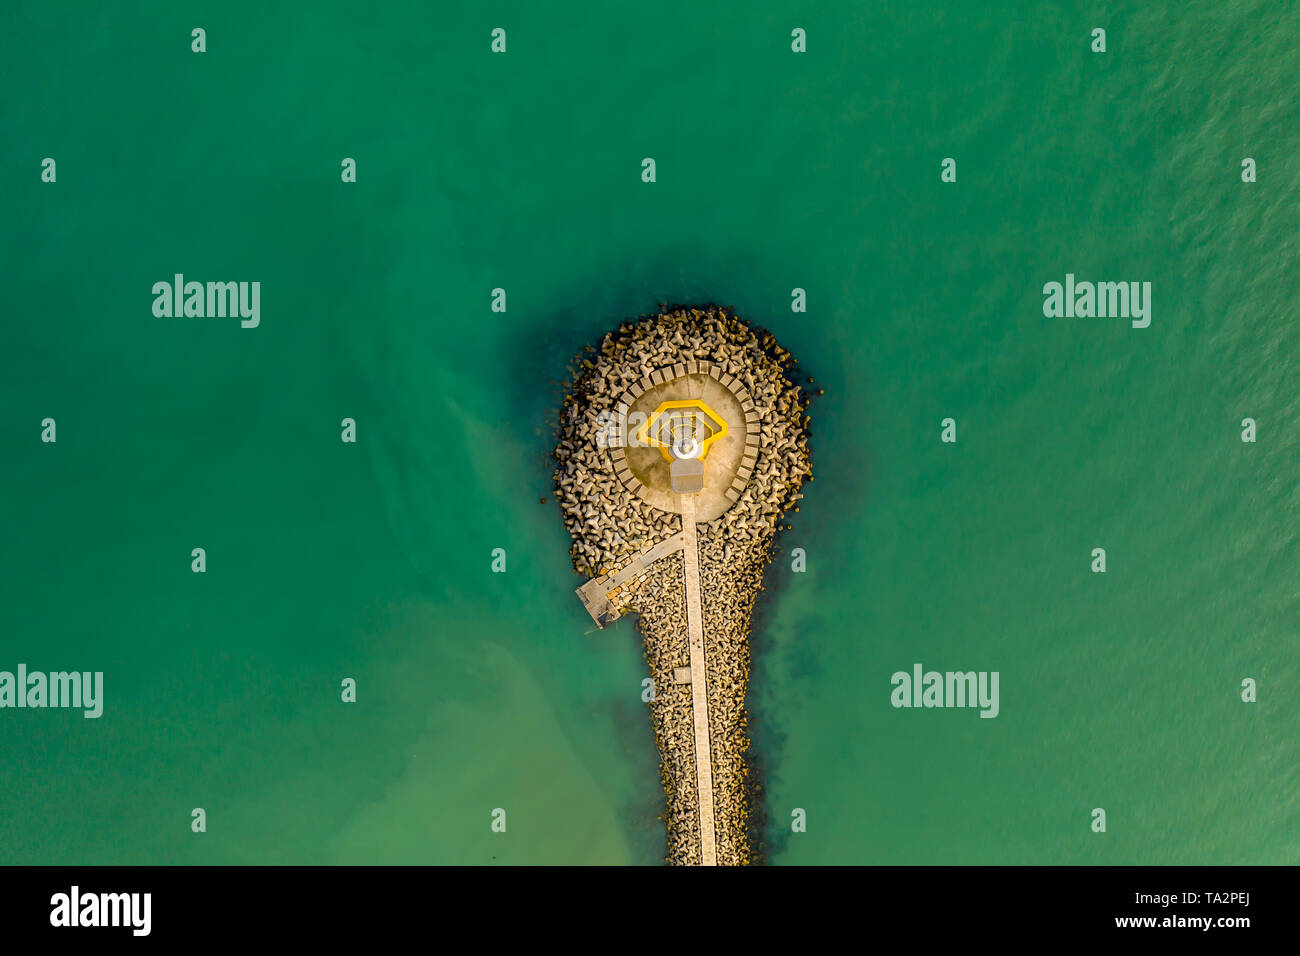 lignano sabbiadoro beacon lighthouse, view from a drone in a sunny day. green water and geometry lines - Stock Image